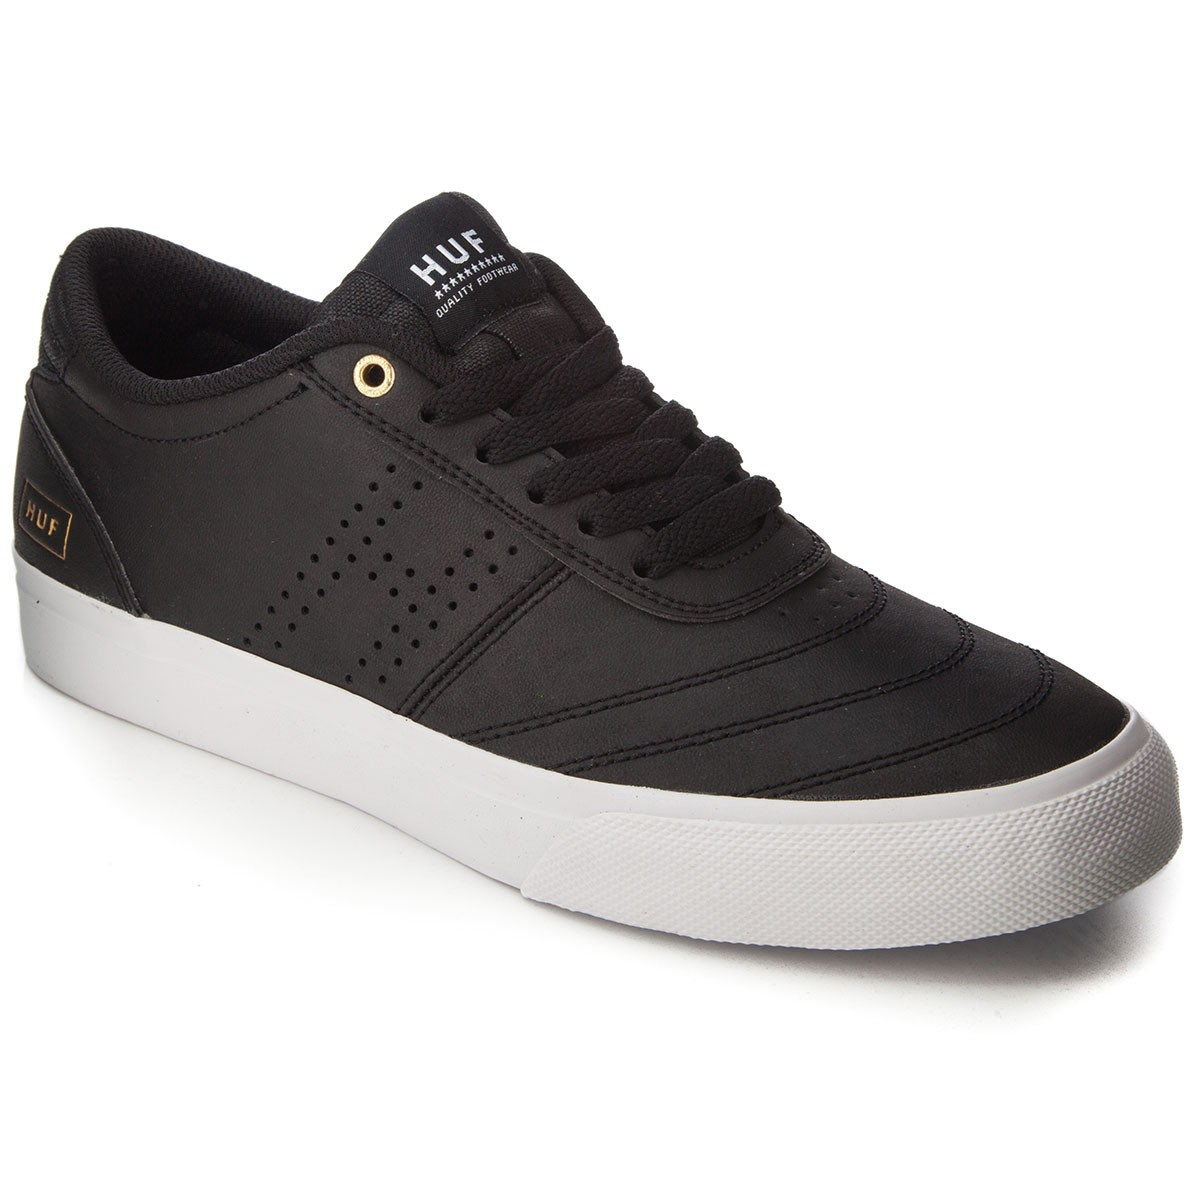 HUF Galaxy Shoes - Black Leather/White - 13.0